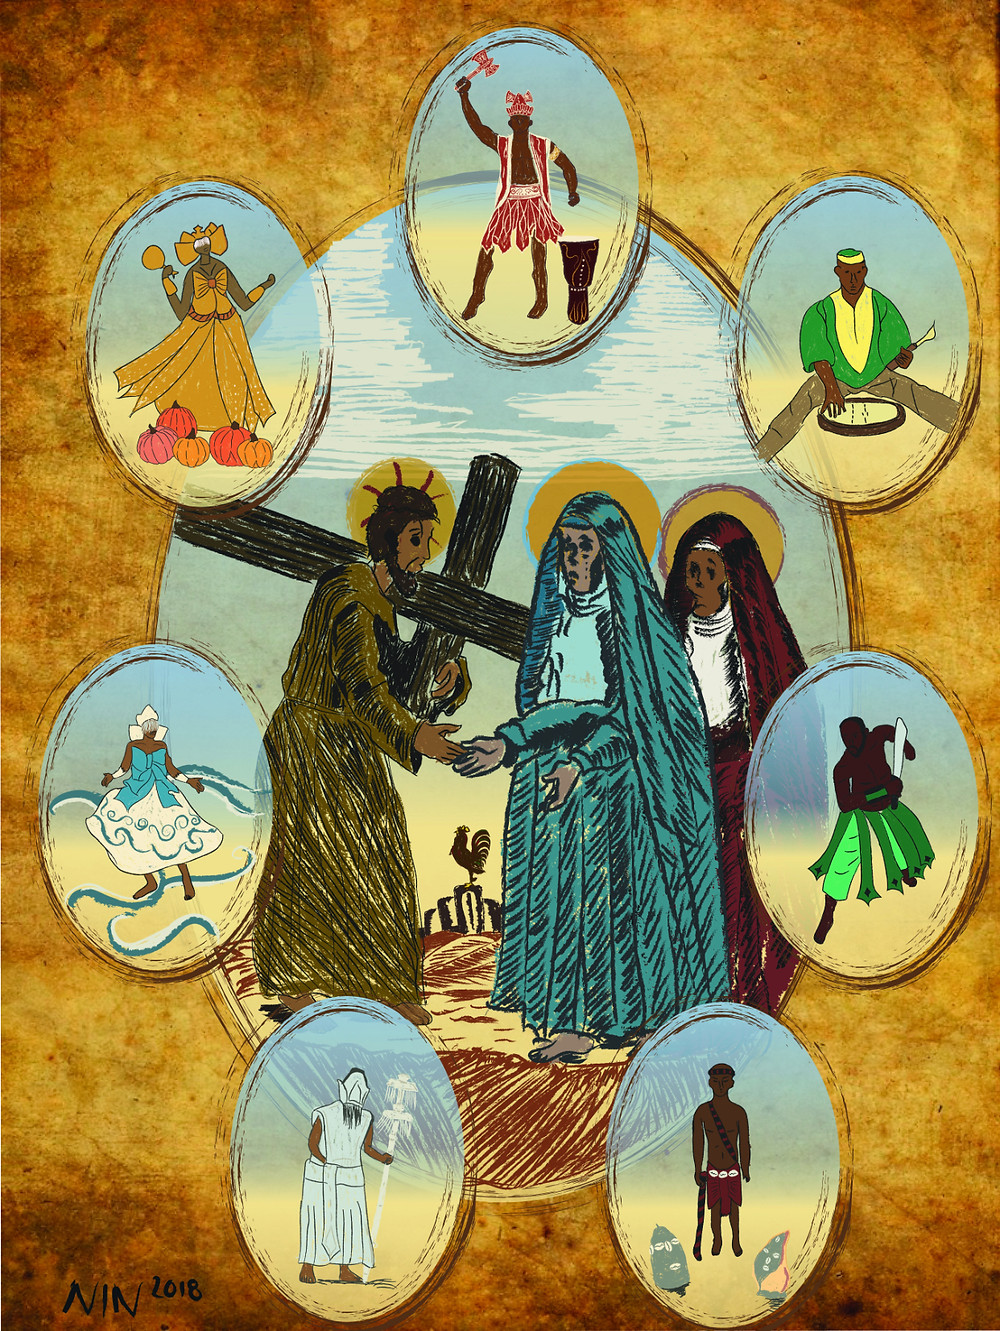 Digital Painting of the Seven African Powers (Oshun, Shango, Orunmila, Ogun, Elegua, Obatala, and Yemaya) surrounding Christ.